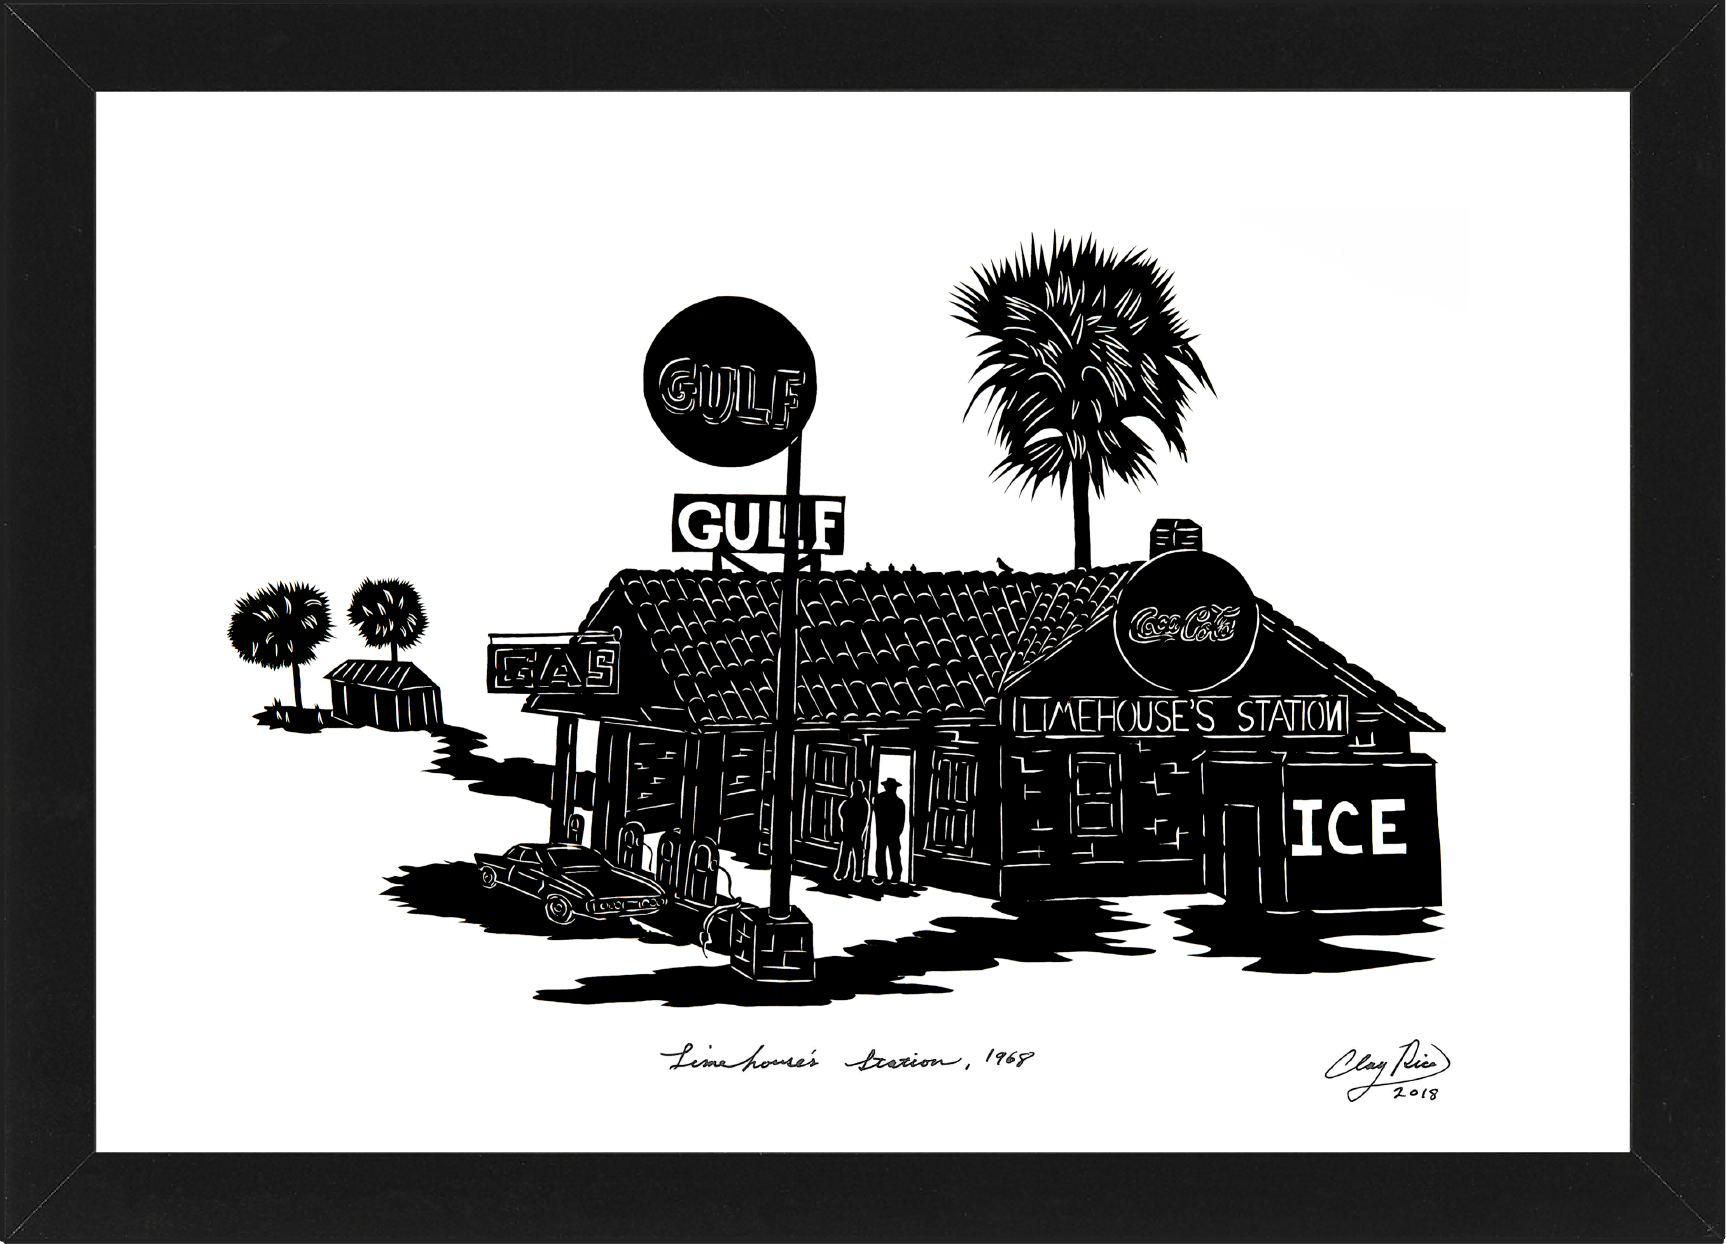 silhouette art of a gulf gas station